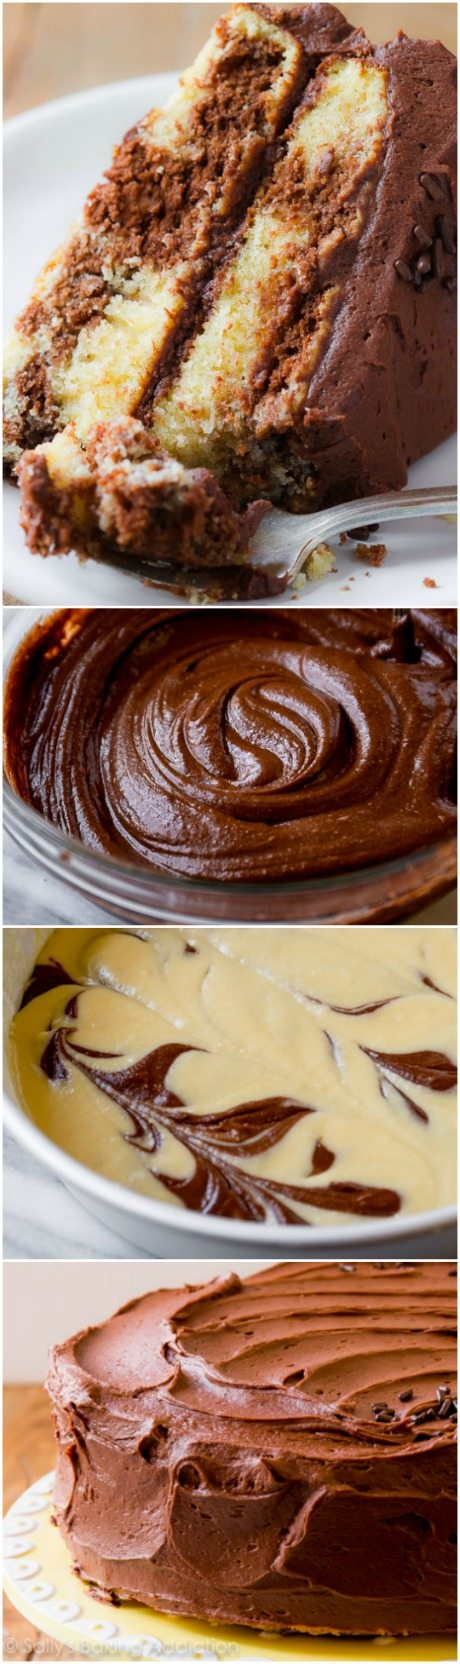 How to make the best, most buttery and rich marble cake from scratch!! Complete step-by-step photos and recipe on sallysbakingaddiction.com